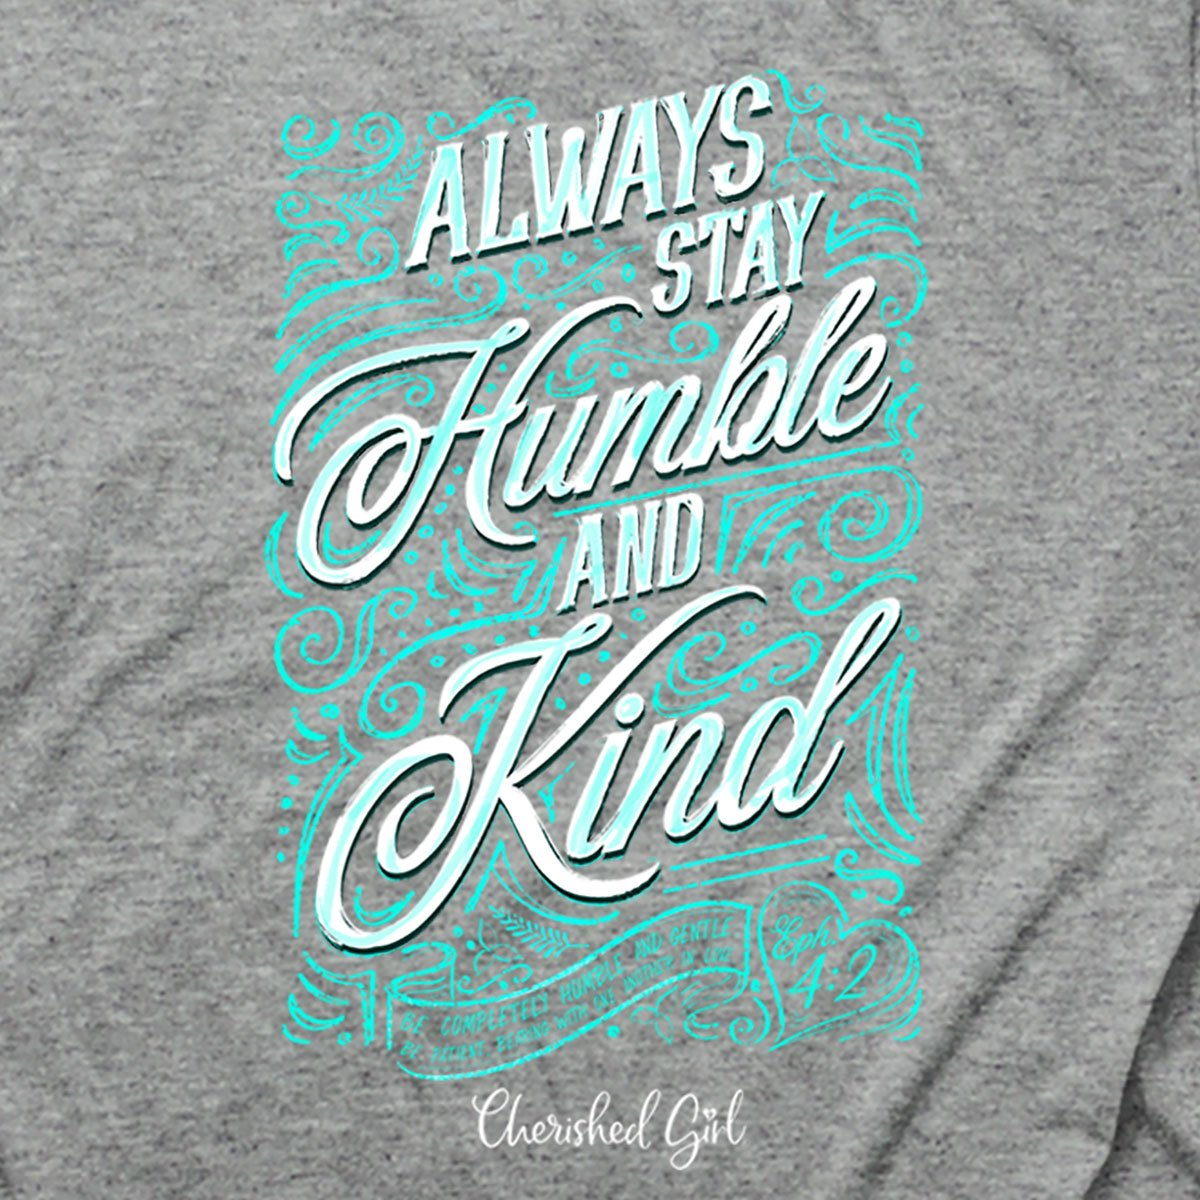 Cherished Girl Christian T-Shirt Humble and Kind